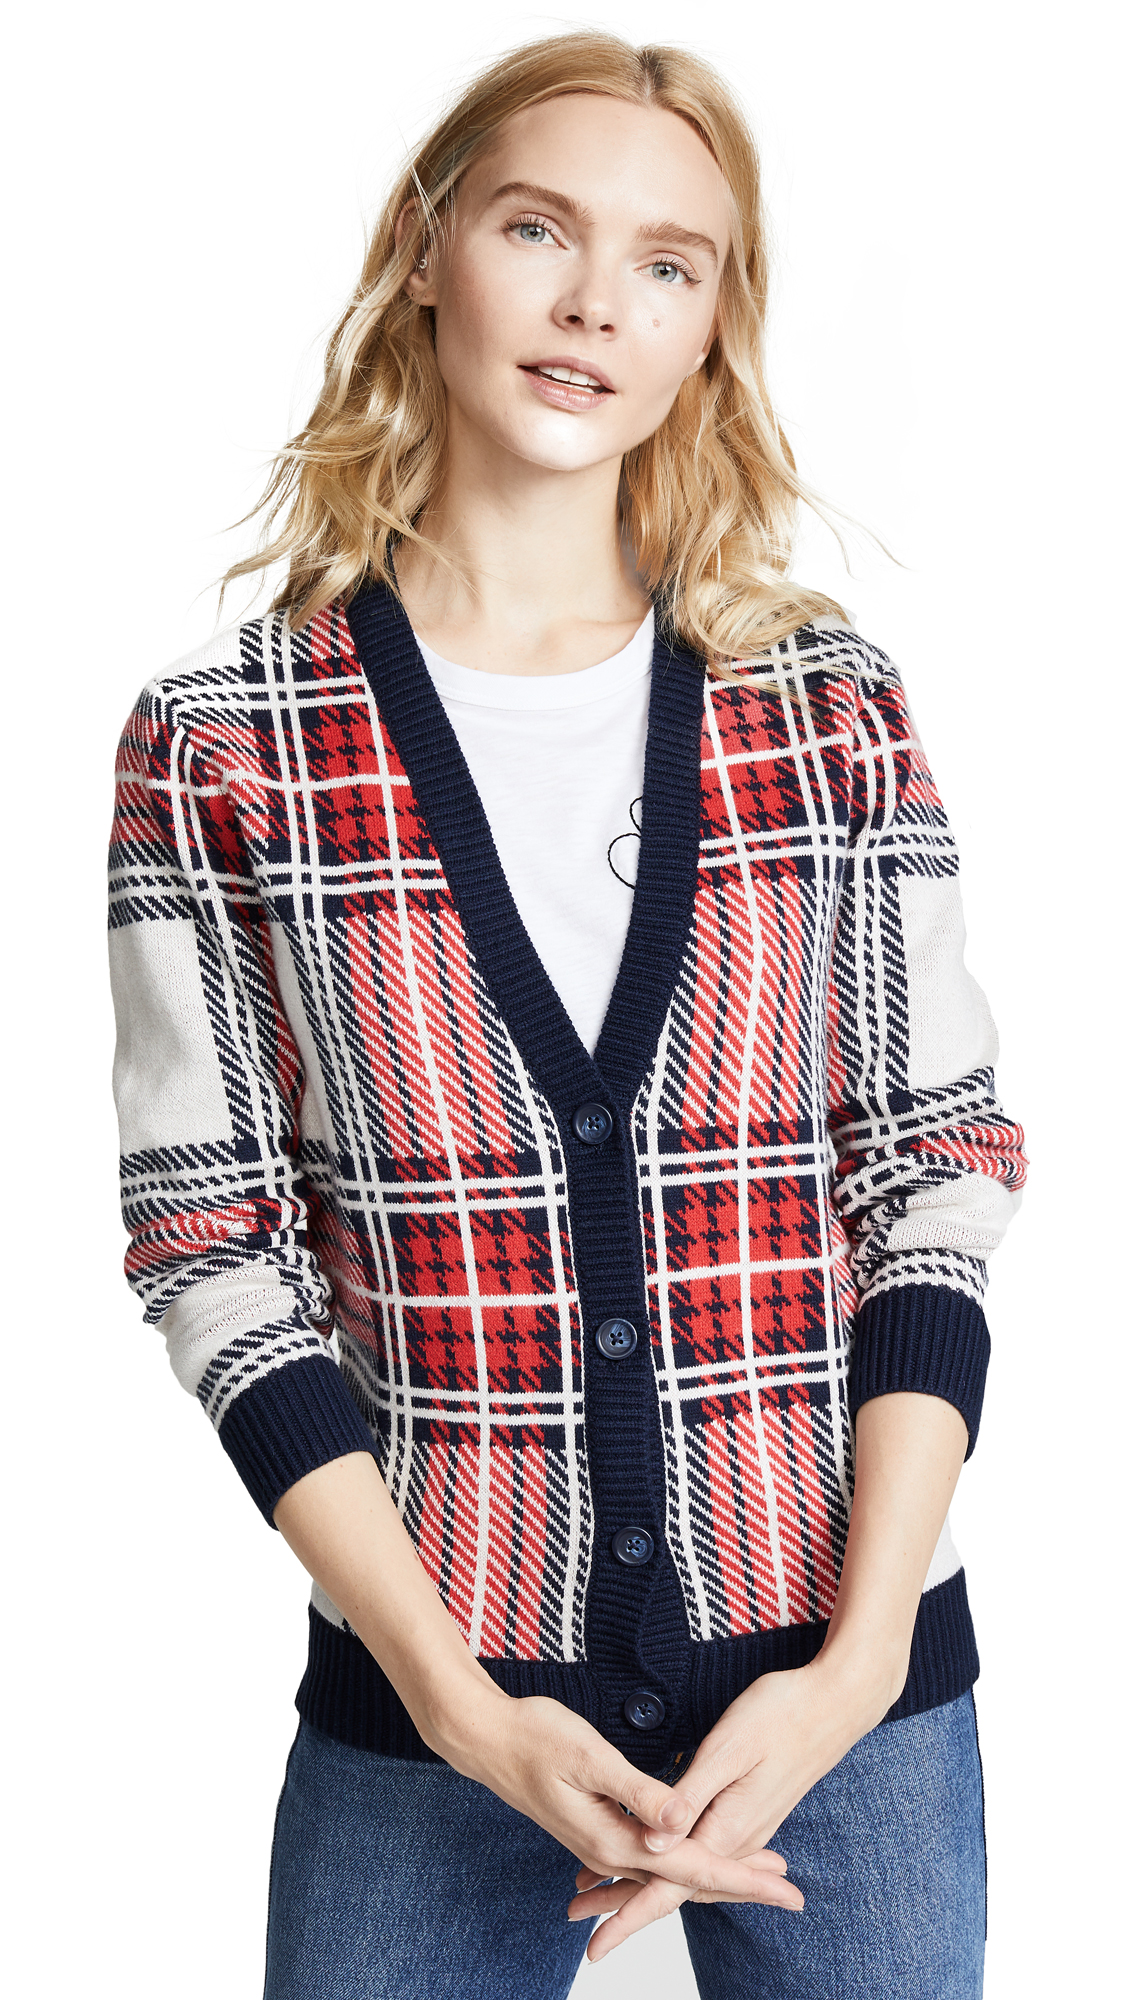 BOP BASICS Tartan Plaid Cardigan in Navy/Tomato Plaid